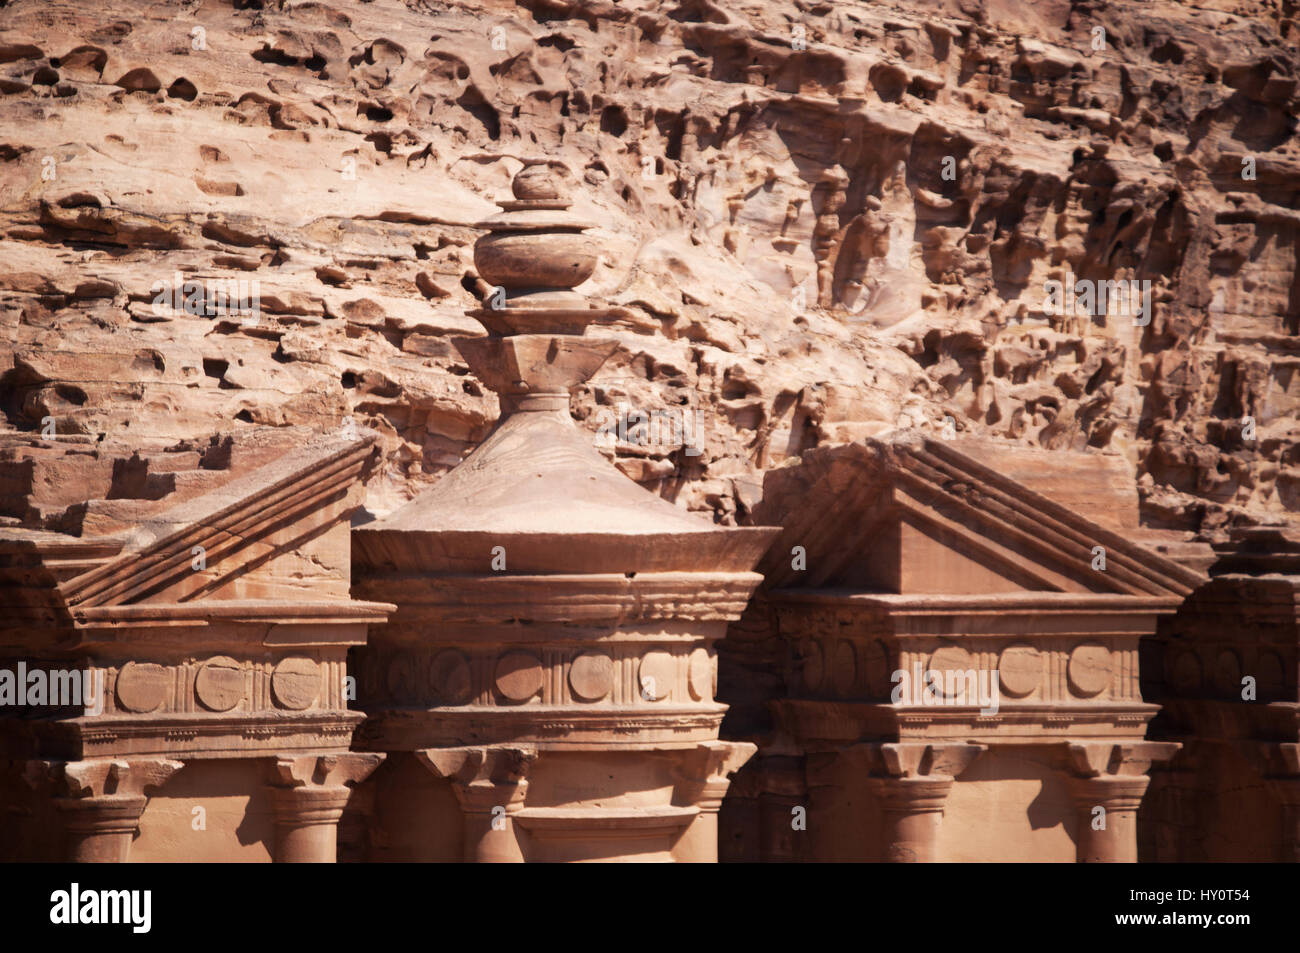 Jordan: the pediment of the Monastery, Ad Deir or El Deir, the monumental building carved out of rock in the archaeological - Stock Image